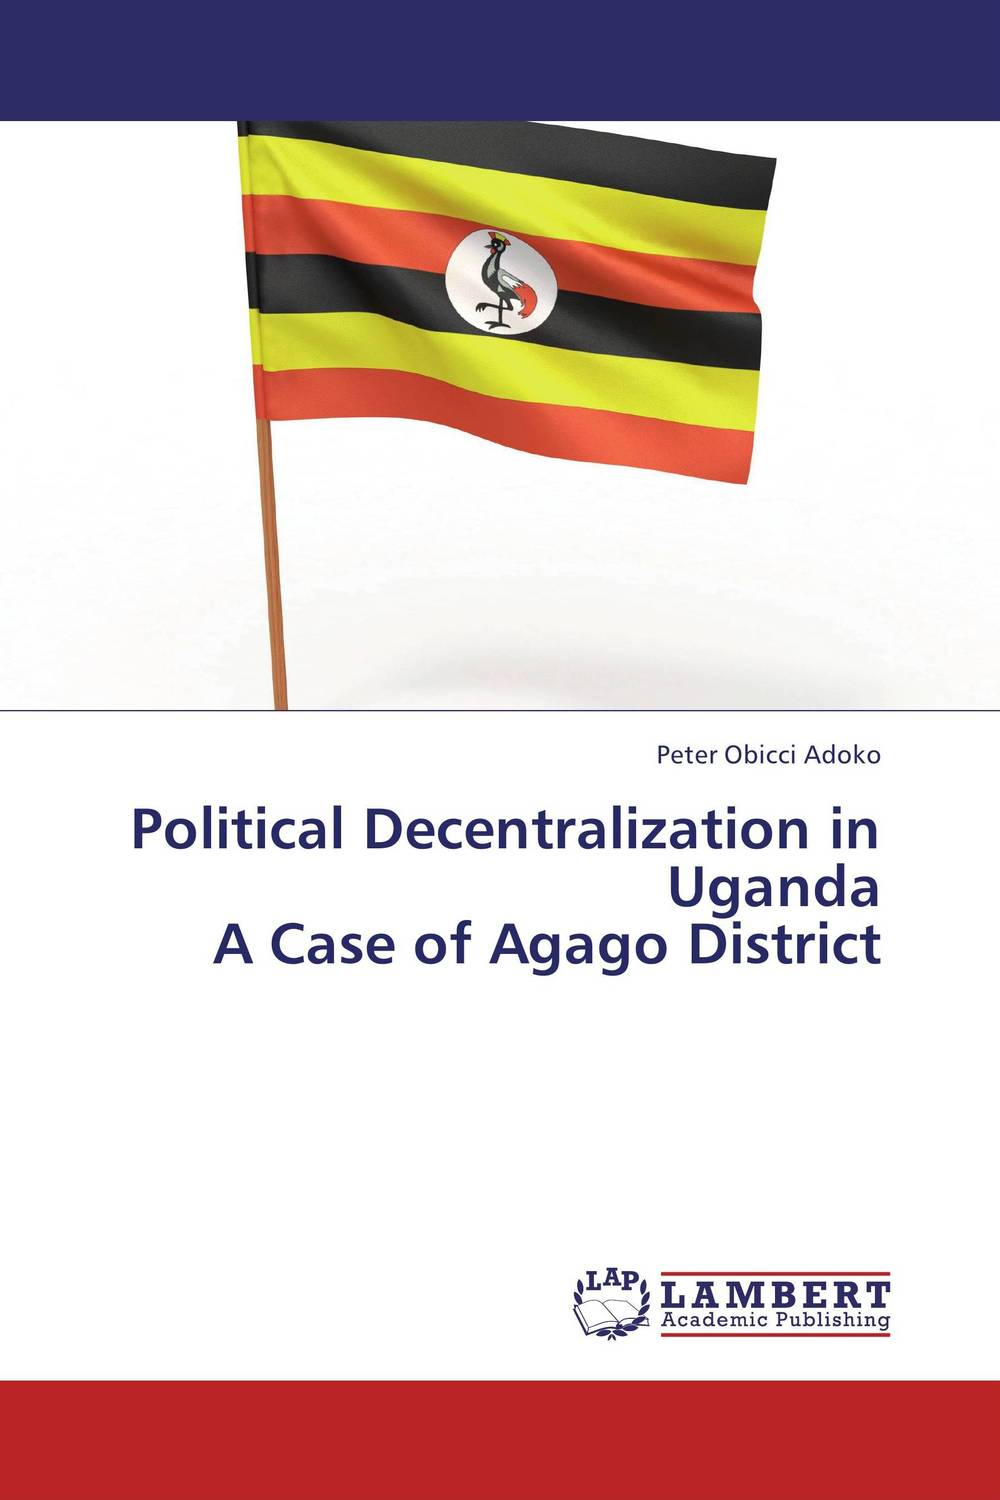 Political Decentralization in Uganda  A Case of Agago District a study of the religio political thought of abdurrahman wahid